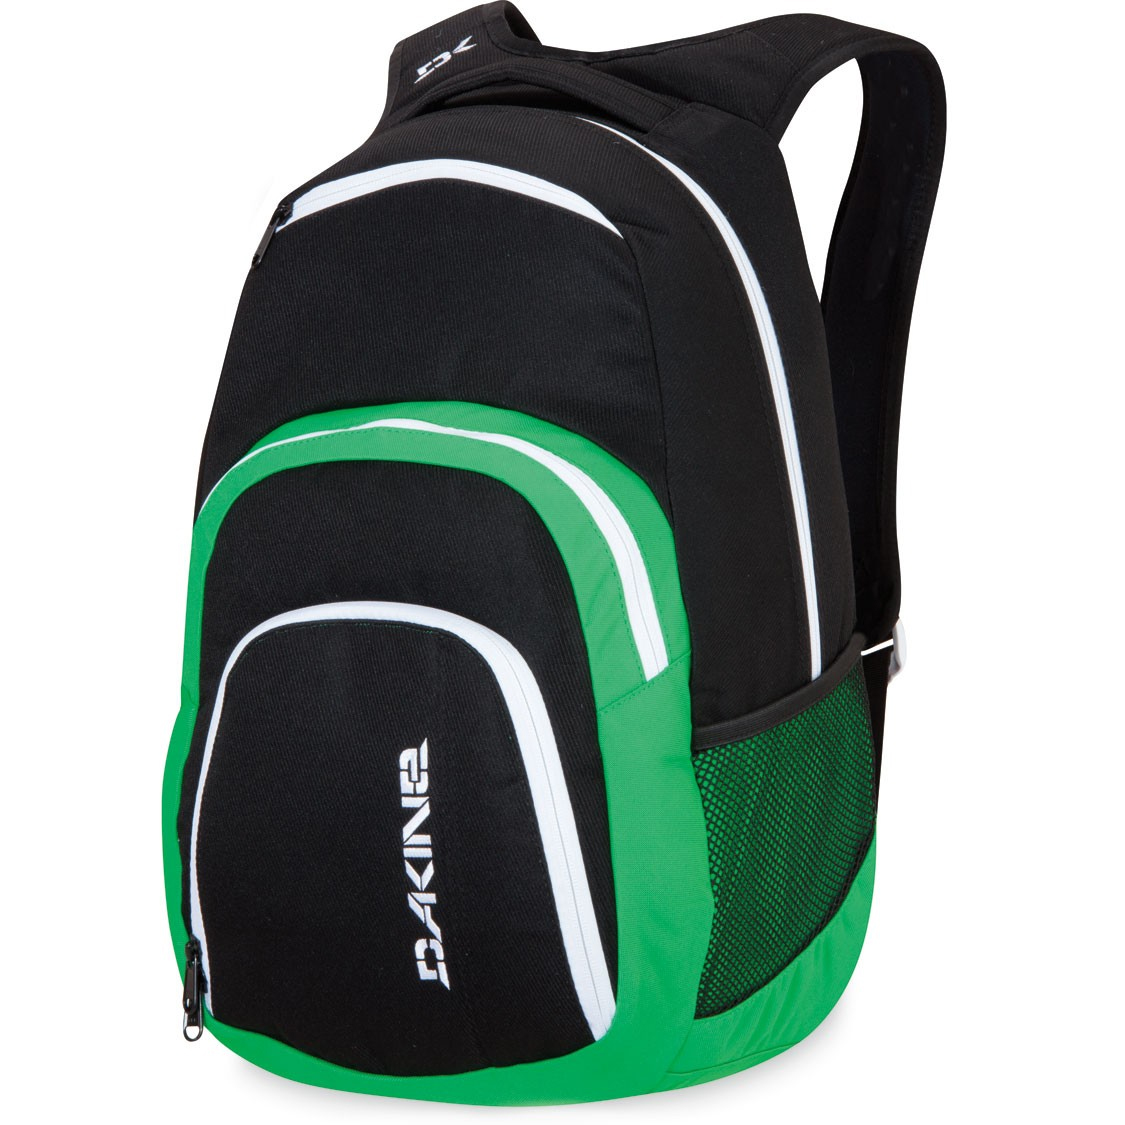 DAKINE CAMPUS LARGE BACKPACK (8130057)-Team One Newport